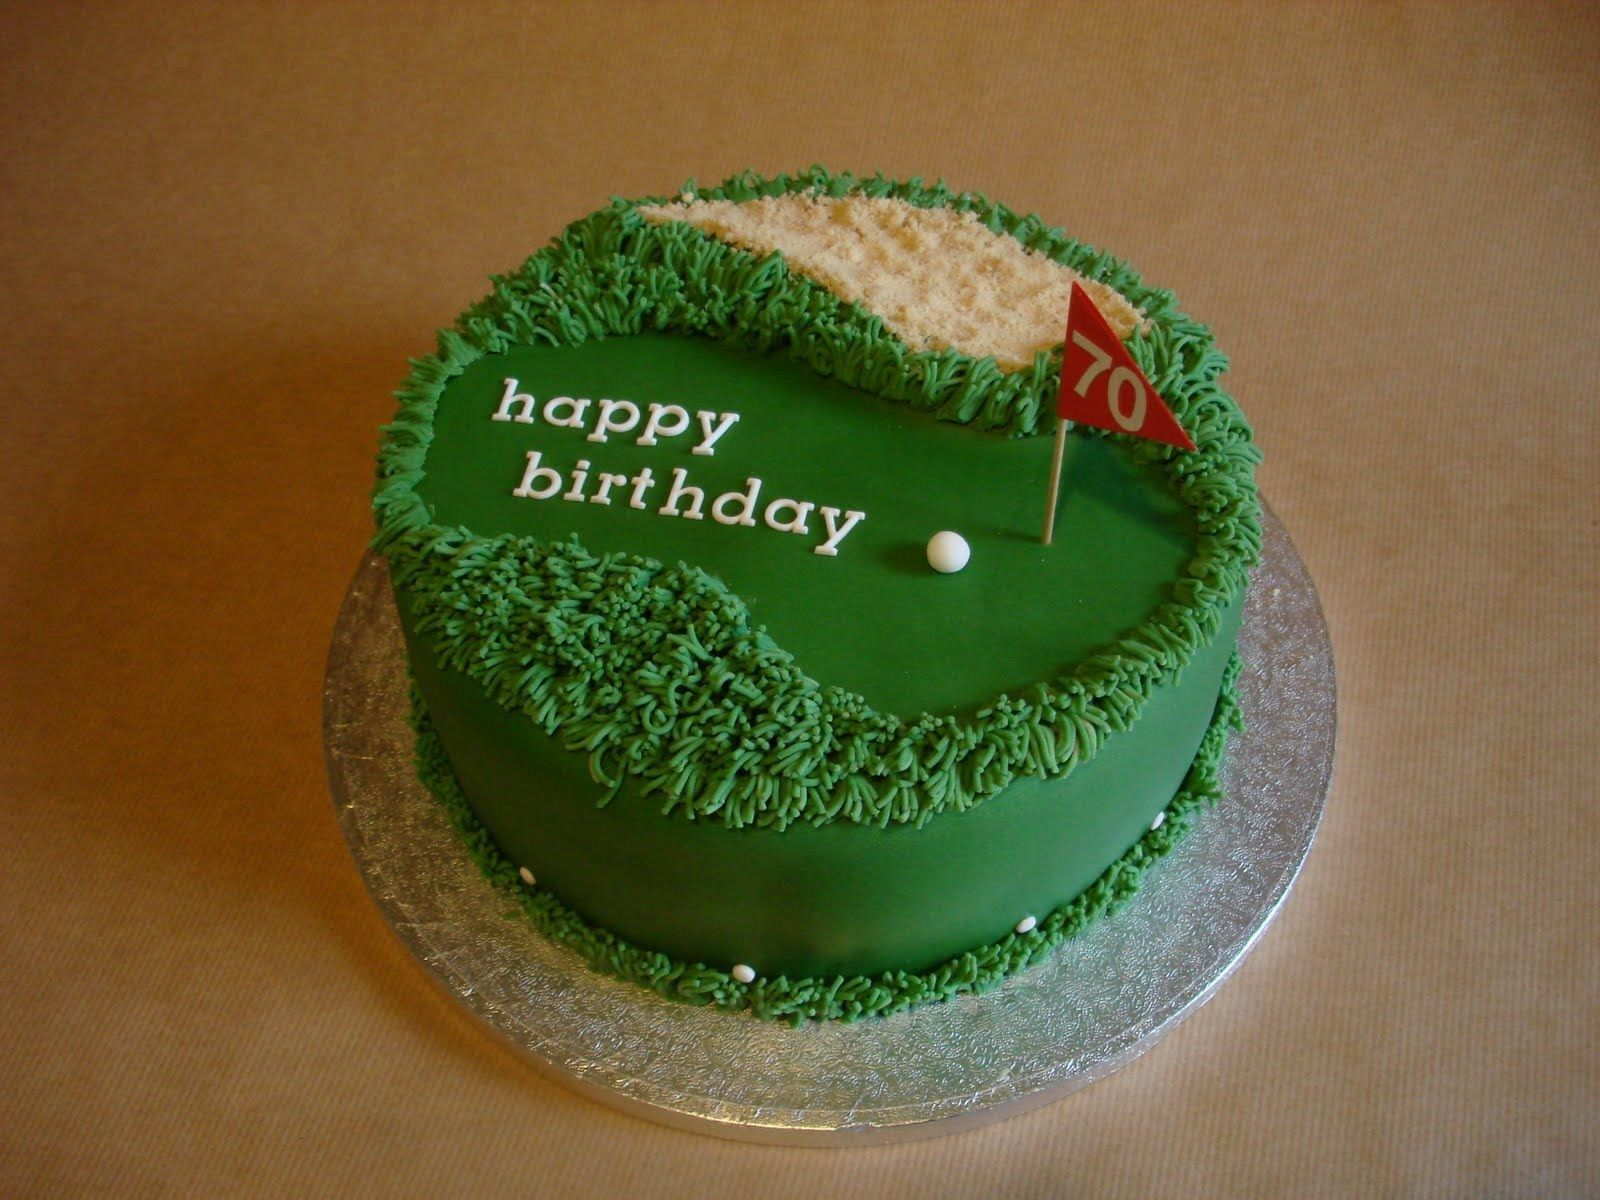 Miraculous 30 Creative Photo Of Golf Birthday Cakes With Images Golf Birthday Cards Printable Trancafe Filternl